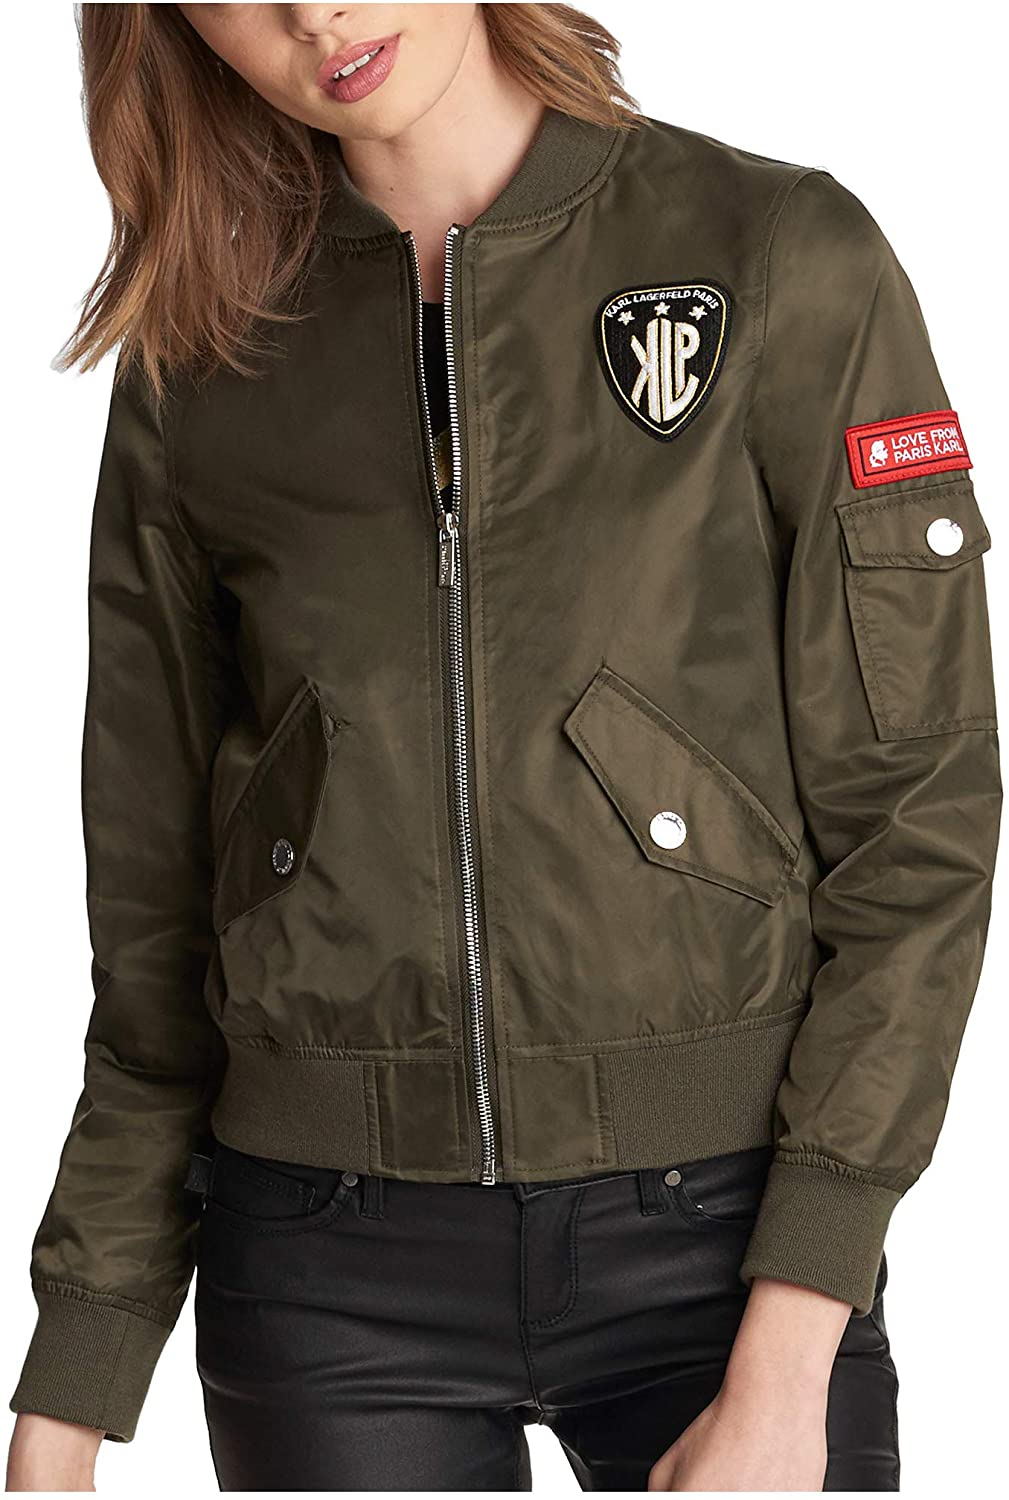 Karl Lagerfeld Paris Women's Bomber Jacket W Patches